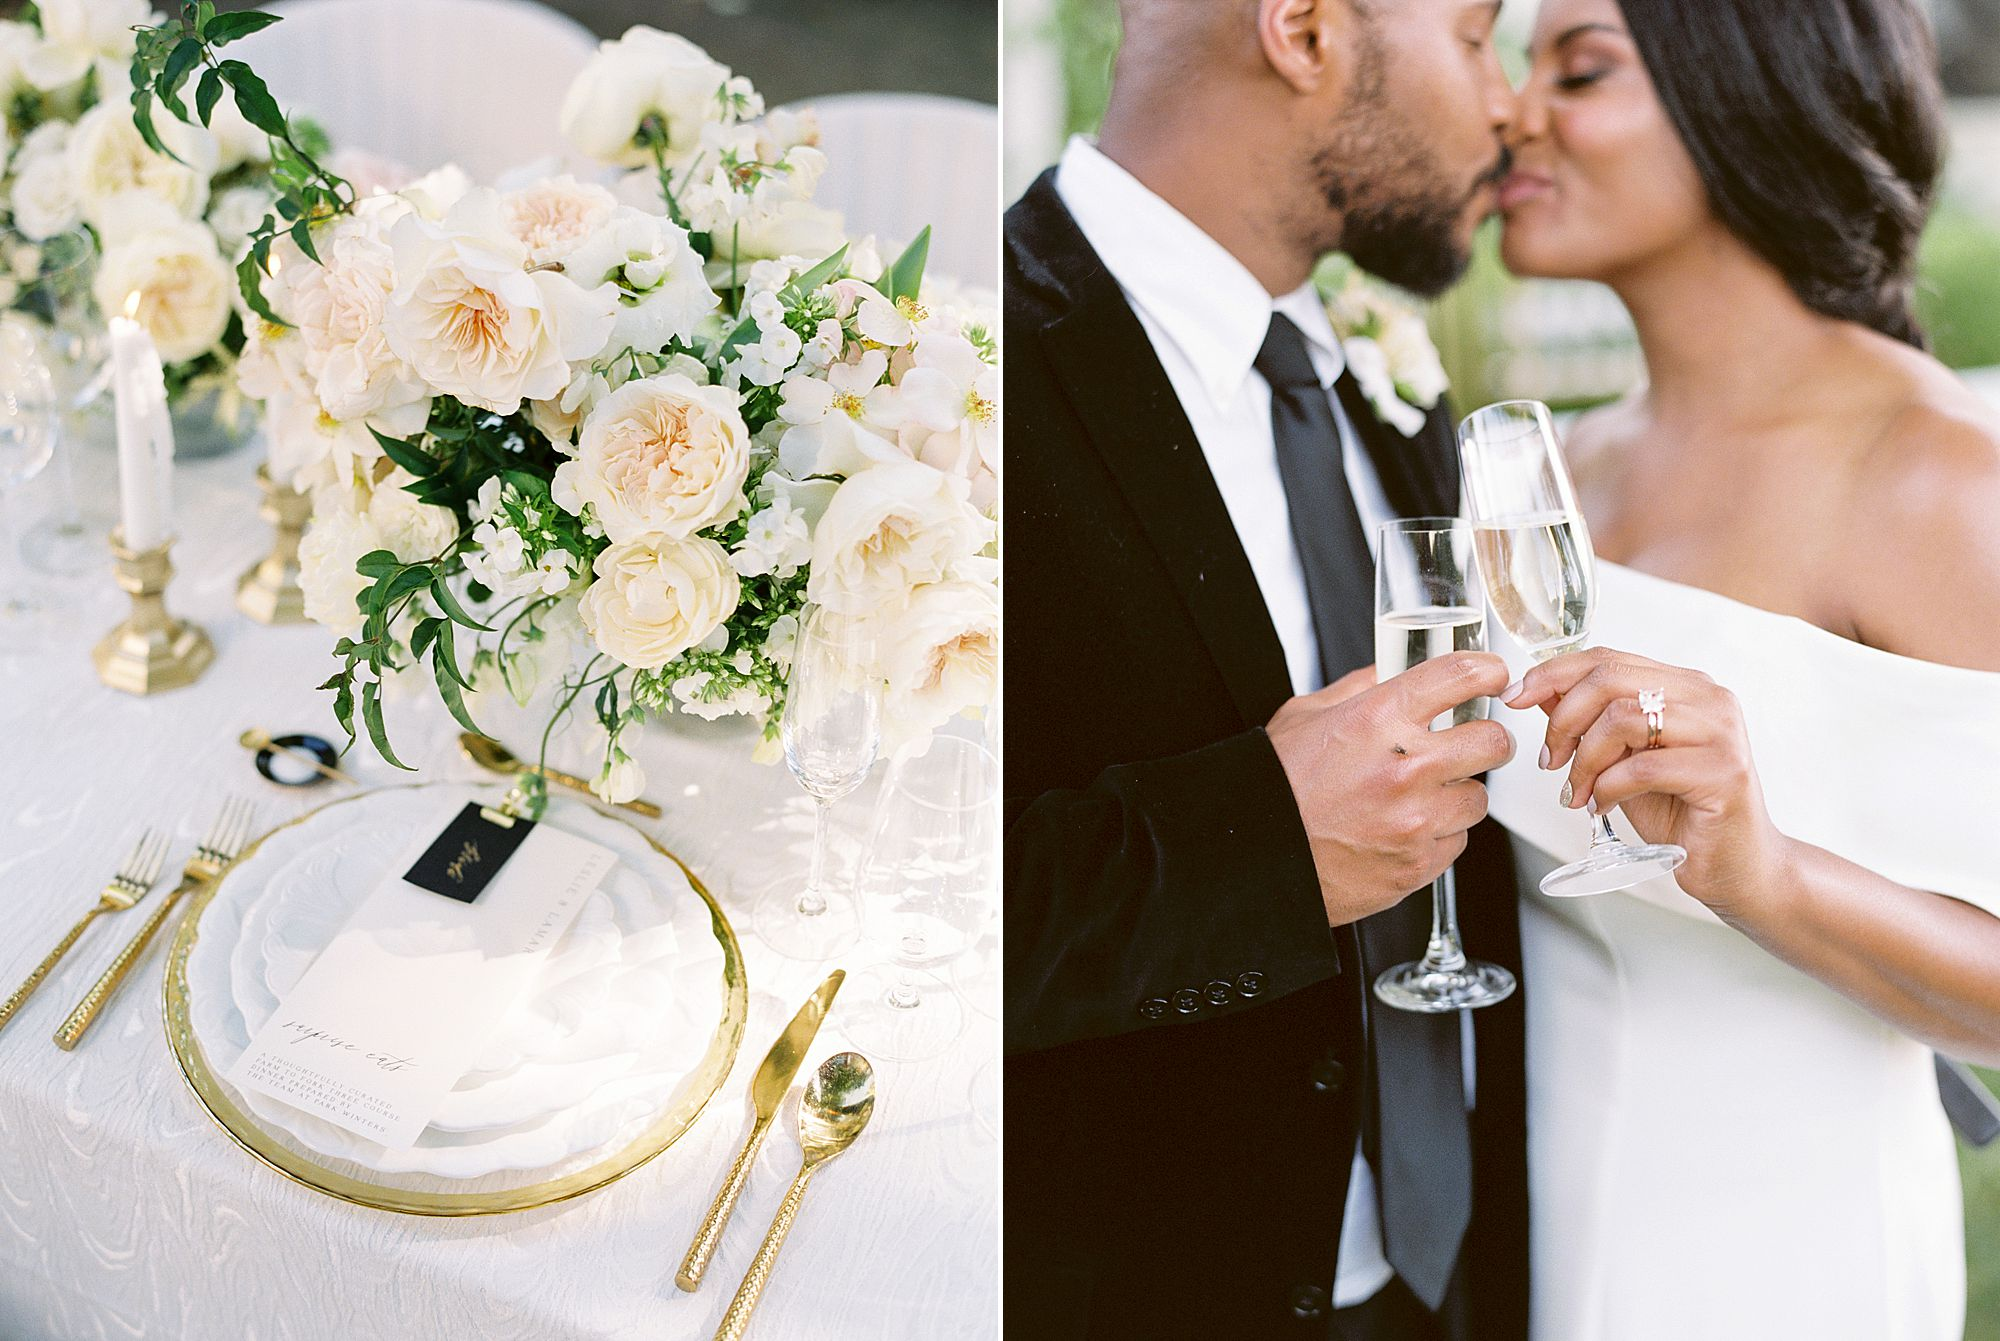 Park Winters Micro-Wedding Inspiration on Style Me Pretty - Stephanie Teague Events - Ashley Baumgartner - Park Winters Wedding - Black Tie Wedding - Micro-Wedding Sacramento Photographer_0001.jpg